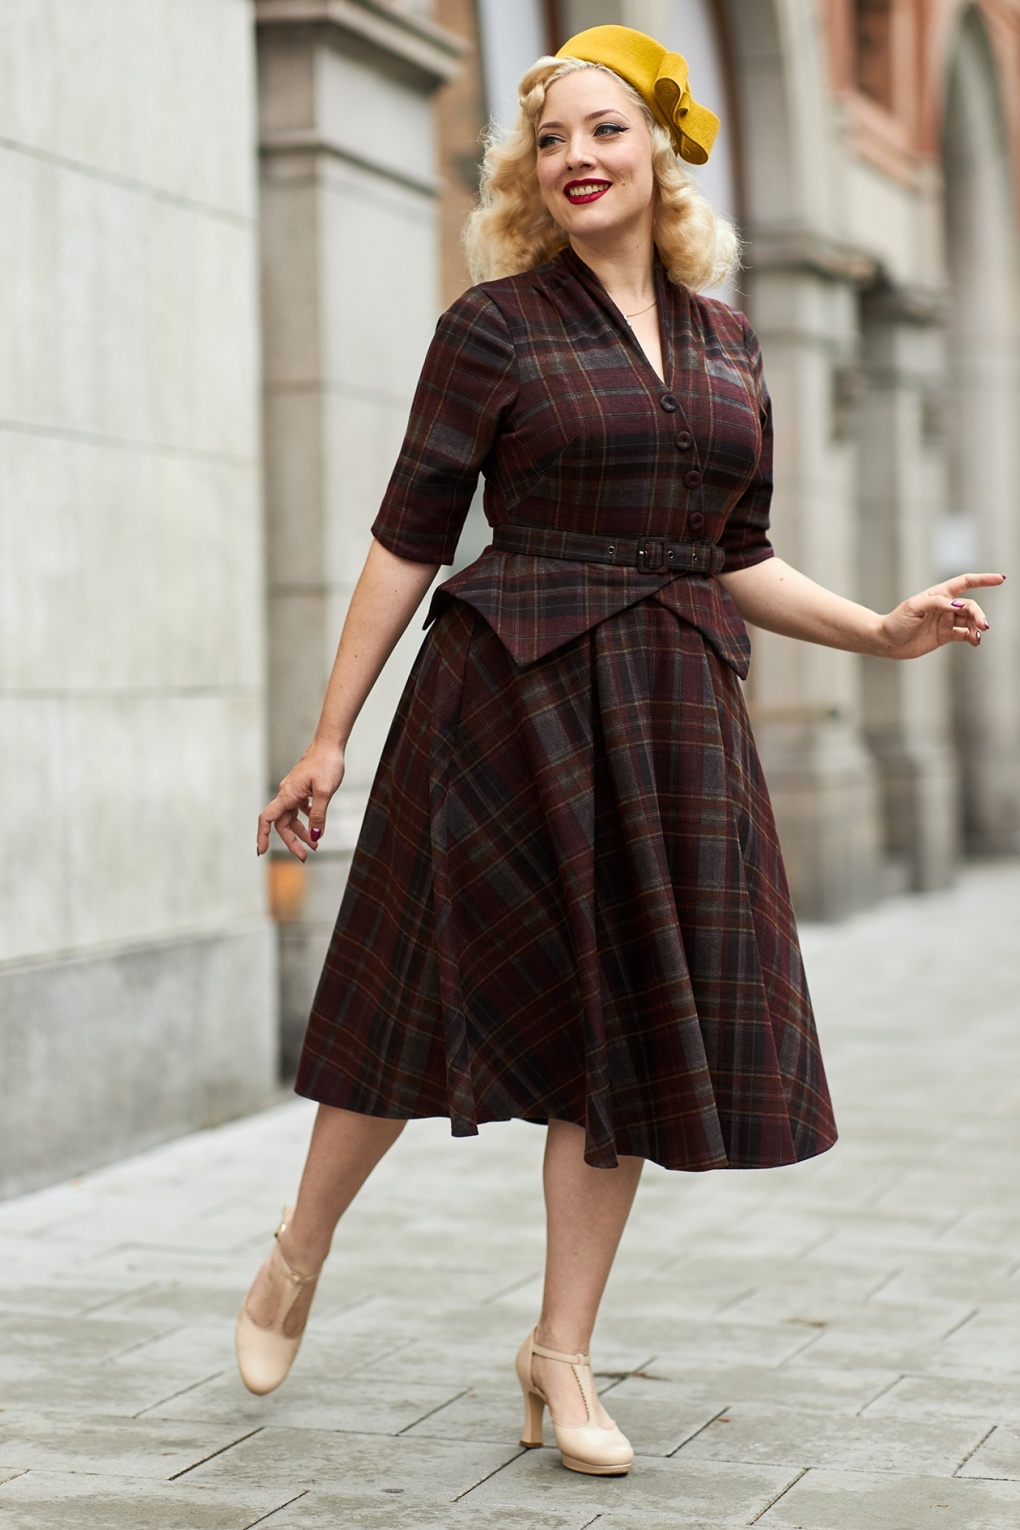 1950s Style Clothing & Fashion 50s Modesty Bo Tartan Swing Dress in Wine and Grey £122.47 AT vintagedancer.com